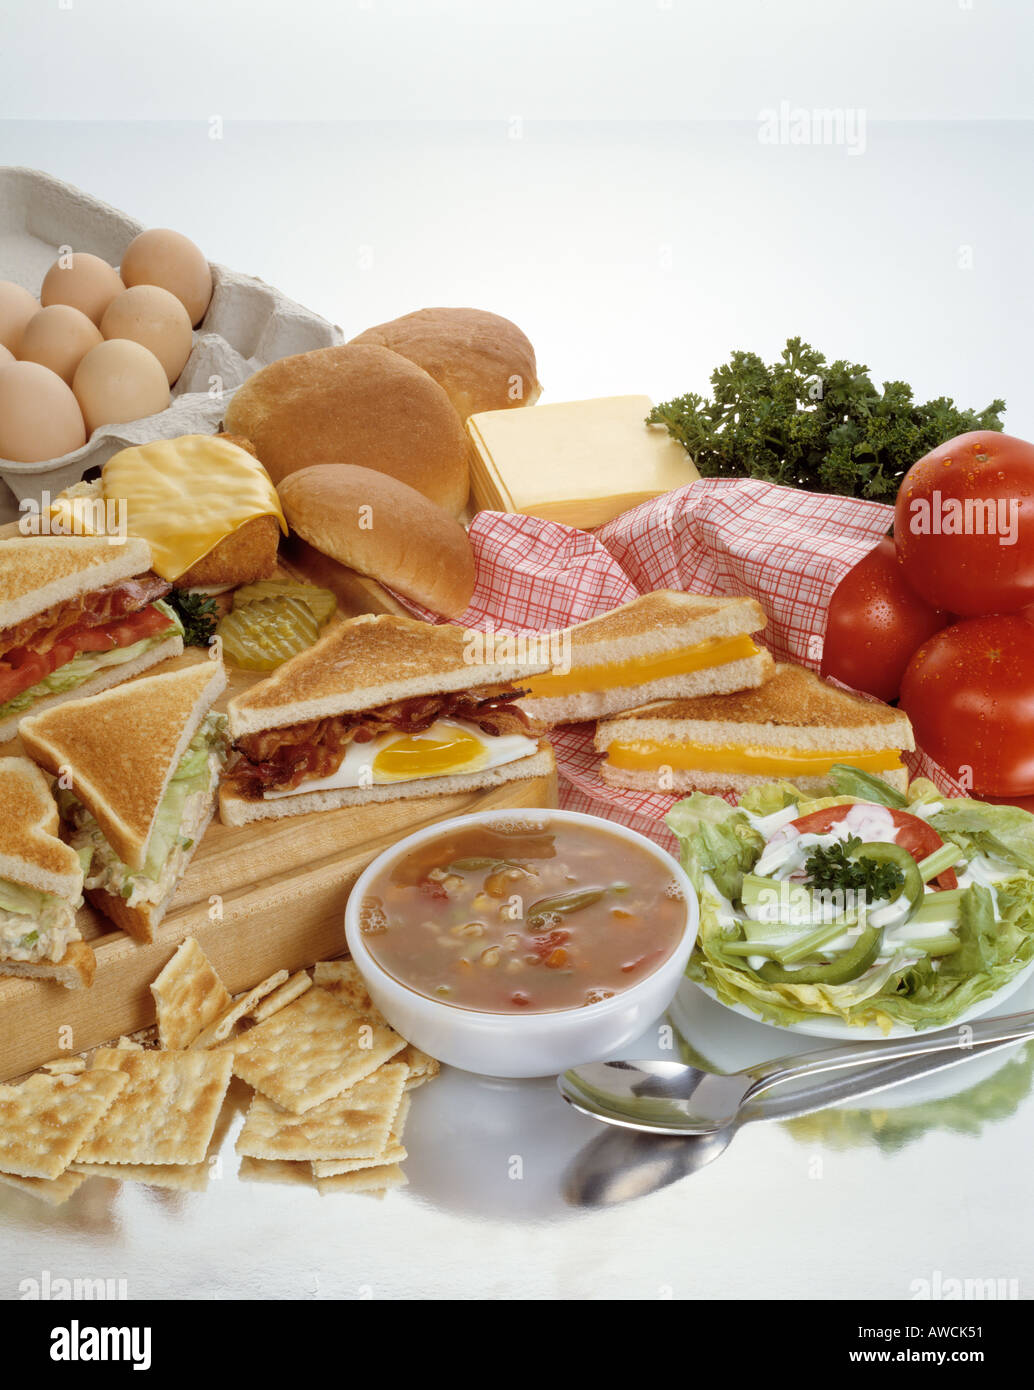 assorted soup sandwiches sandwich combos vegetable toasted cheese bacon egg chicken salad blt lettuce tomato tomatoes Stock Photo